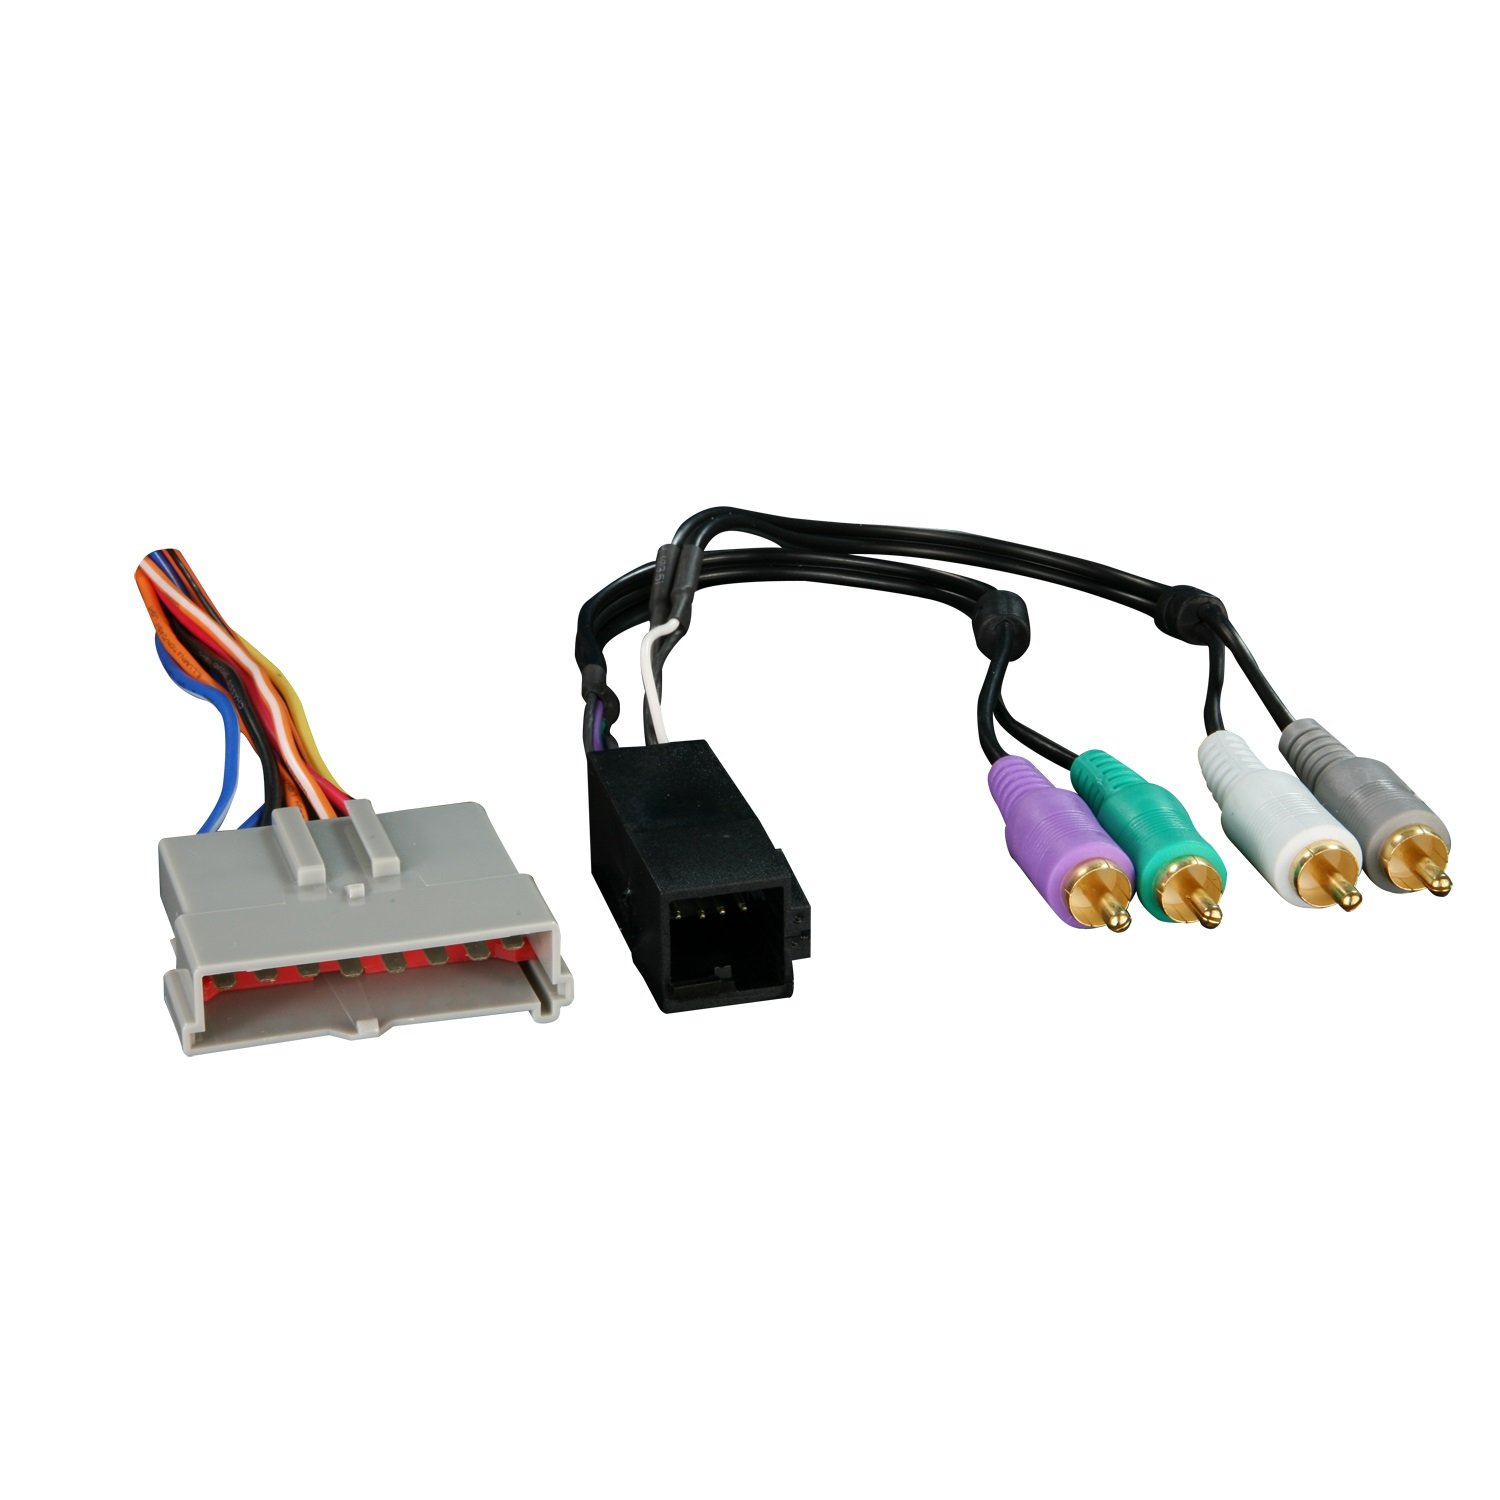 61dBSPZoitL._SL1500_ amazon com metra 70 5510 factory amplifier integration harness ford integration wire harness at webbmarketing.co